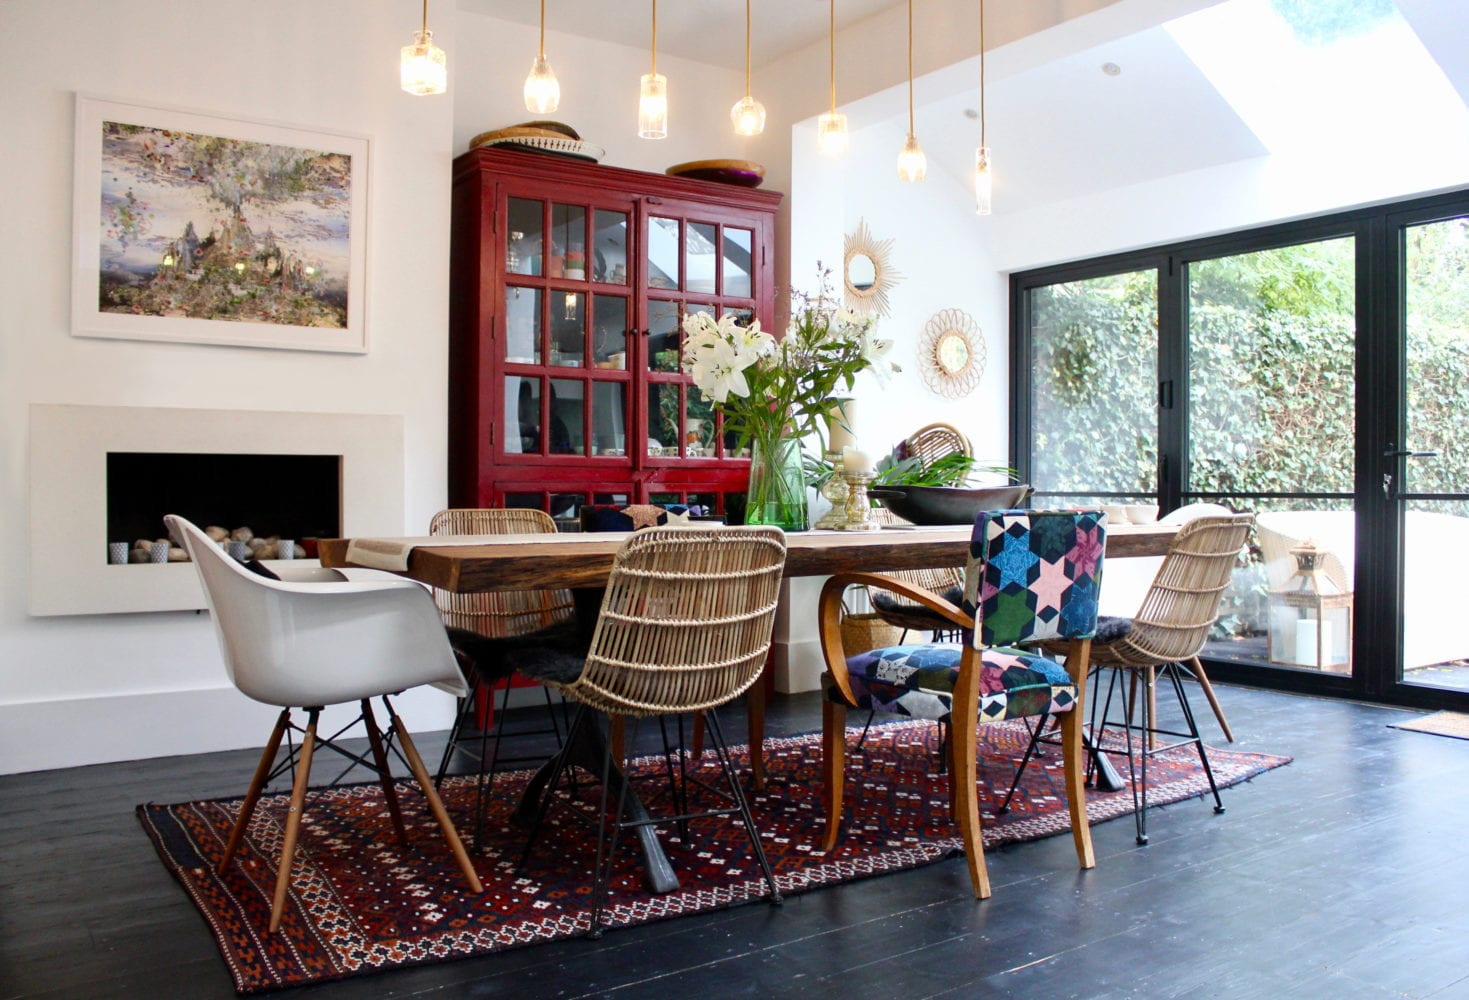 NW3 Interiors enhanced this period West Hampstead home, into a sophisticated and cool family space using an eclectic mix of furniture from the middle east. Click to read more on our interior design portfolio from NW3 Interiors and find out about our interior design services.